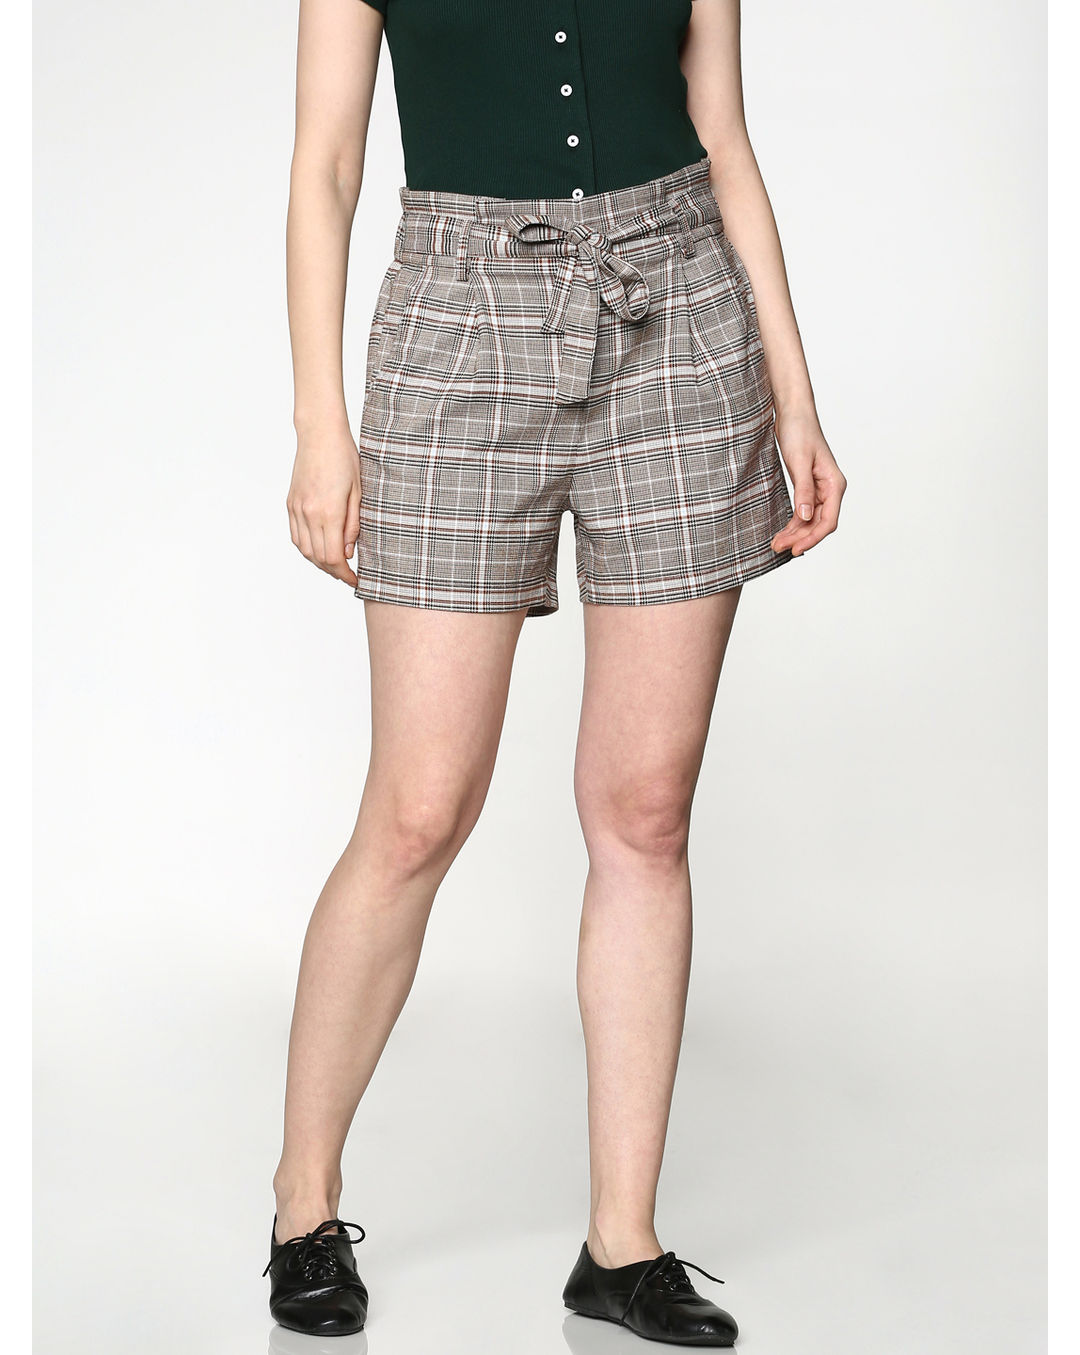 c6074cfc39 Buy ONLY Grey Low Rise Check Tie Up Belt Paper Bag Waist Shorts ...